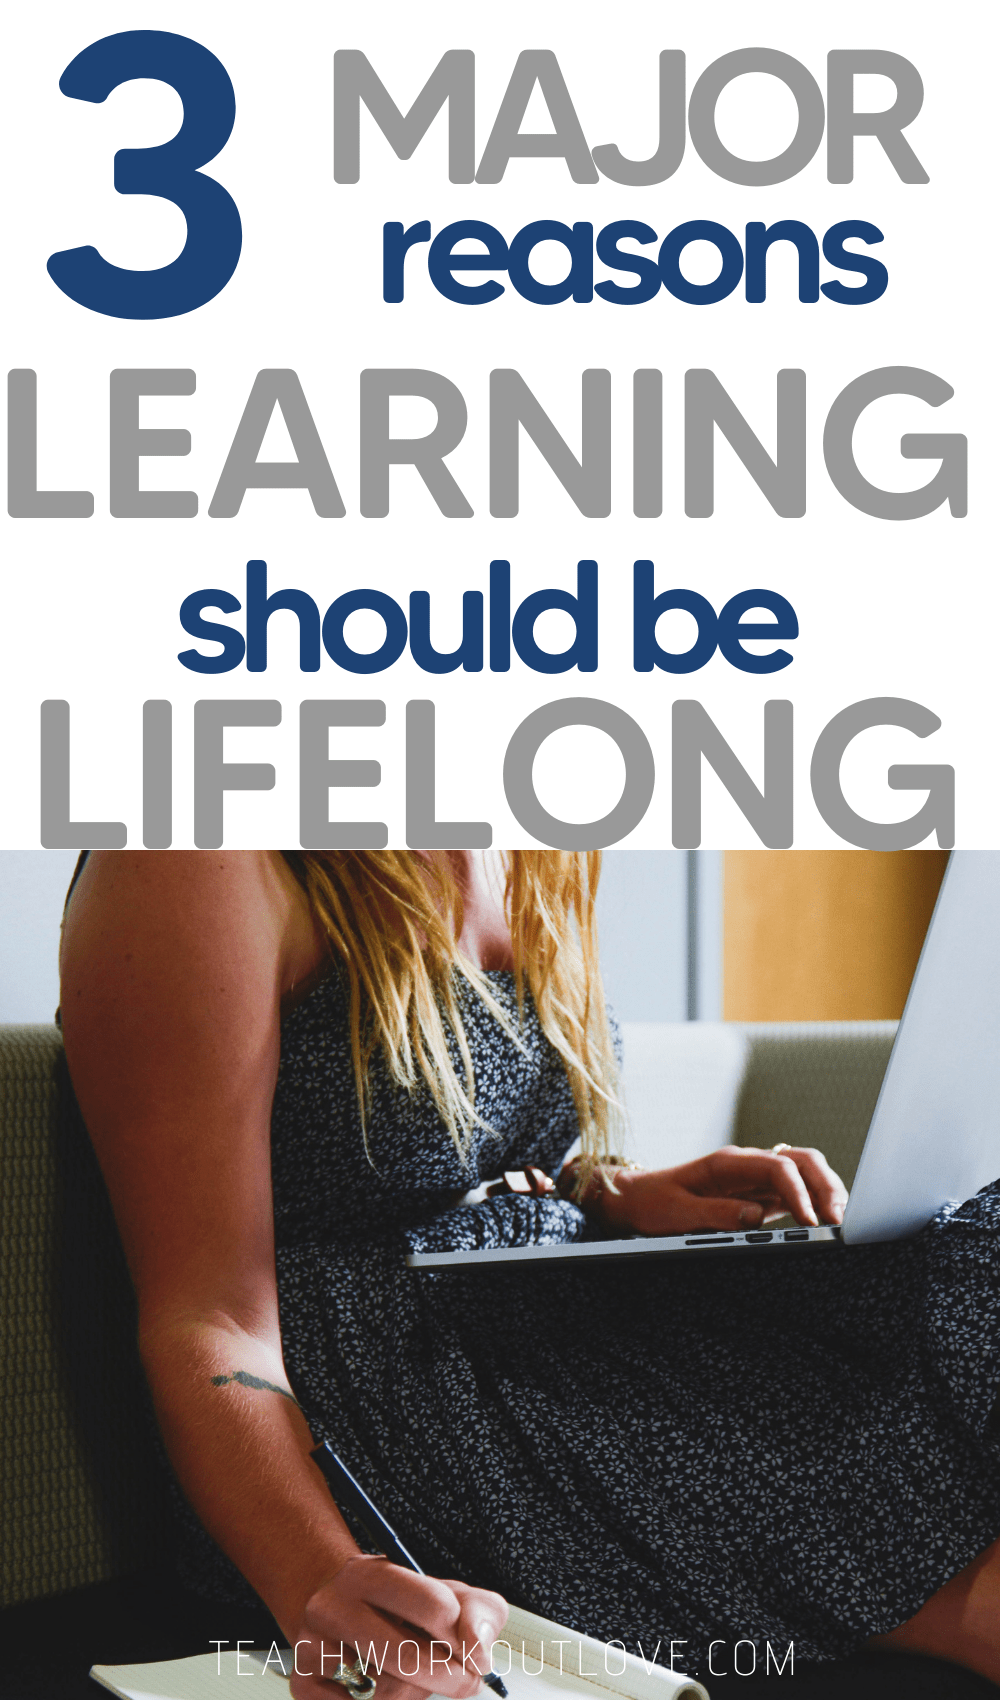 Learning new things is a gateway. Here's how to instil this mindset so that they continue to have success and continue learning lifelong.